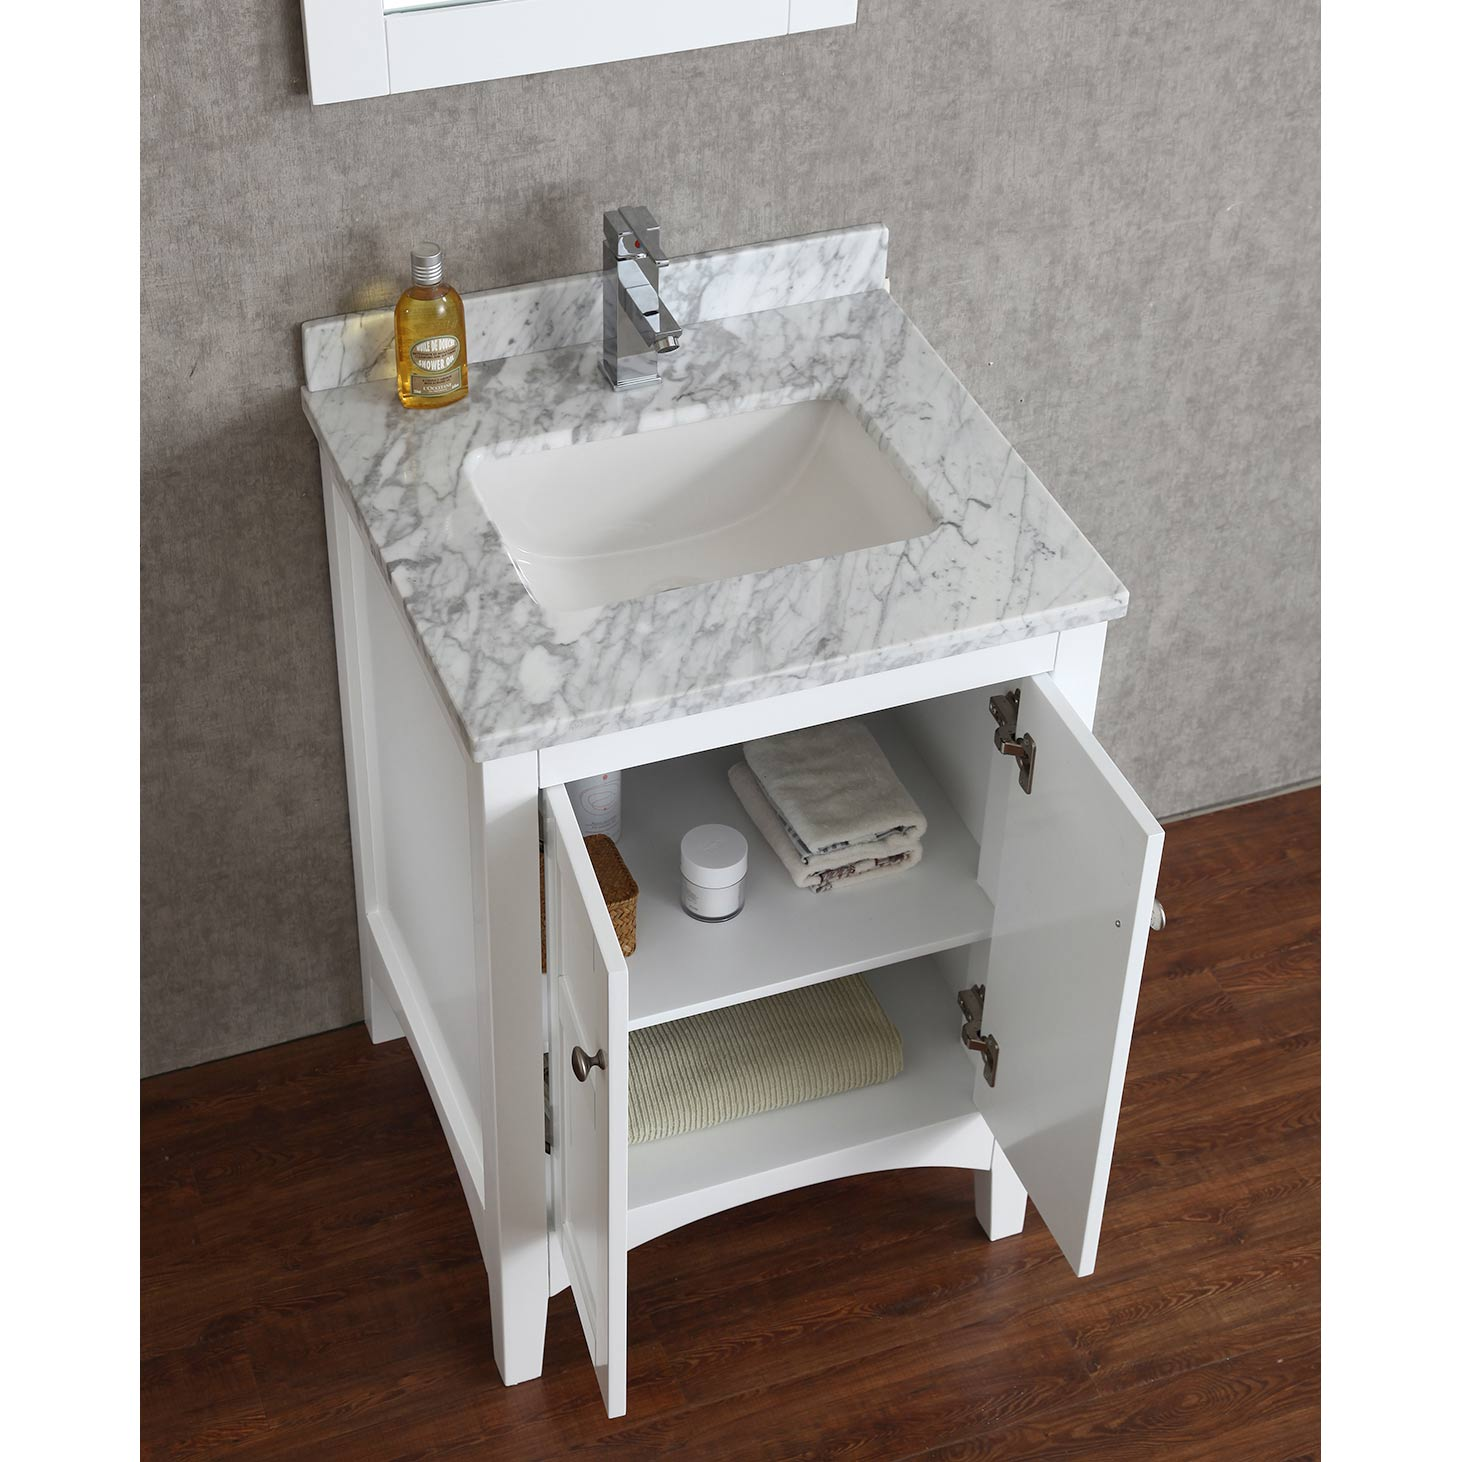 Buy Martin 24 Solid Wood Single Bathroom Vanity In White Hm 001 24 Wmsq Wt Conceptbaths Com